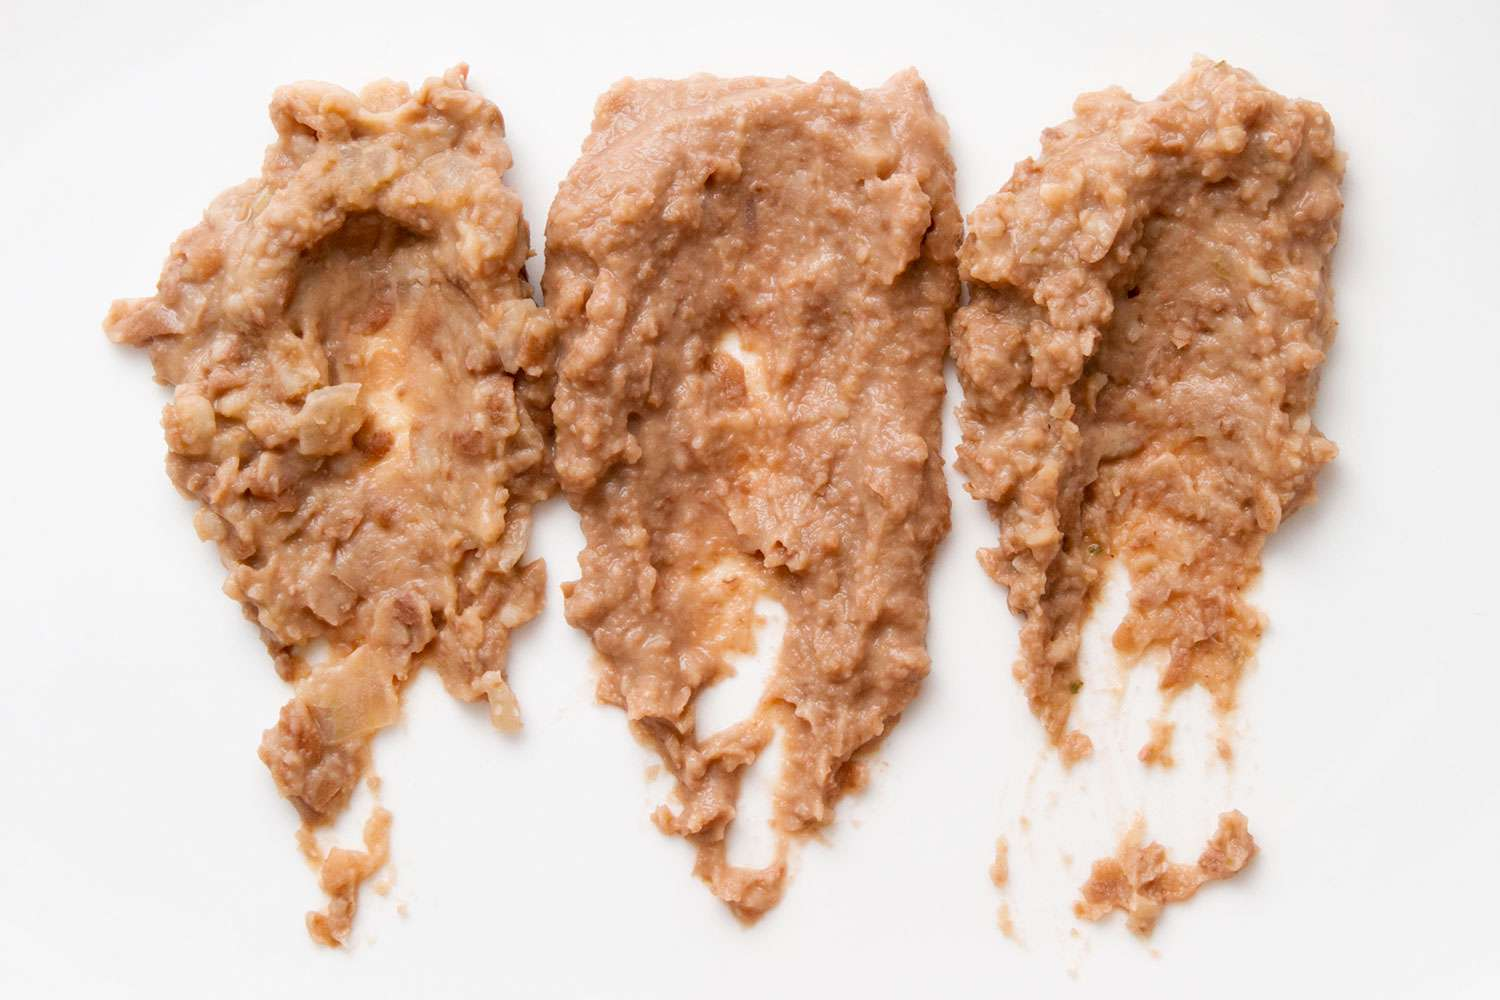 Comparing consistency of mashed, puréed, and processed beans